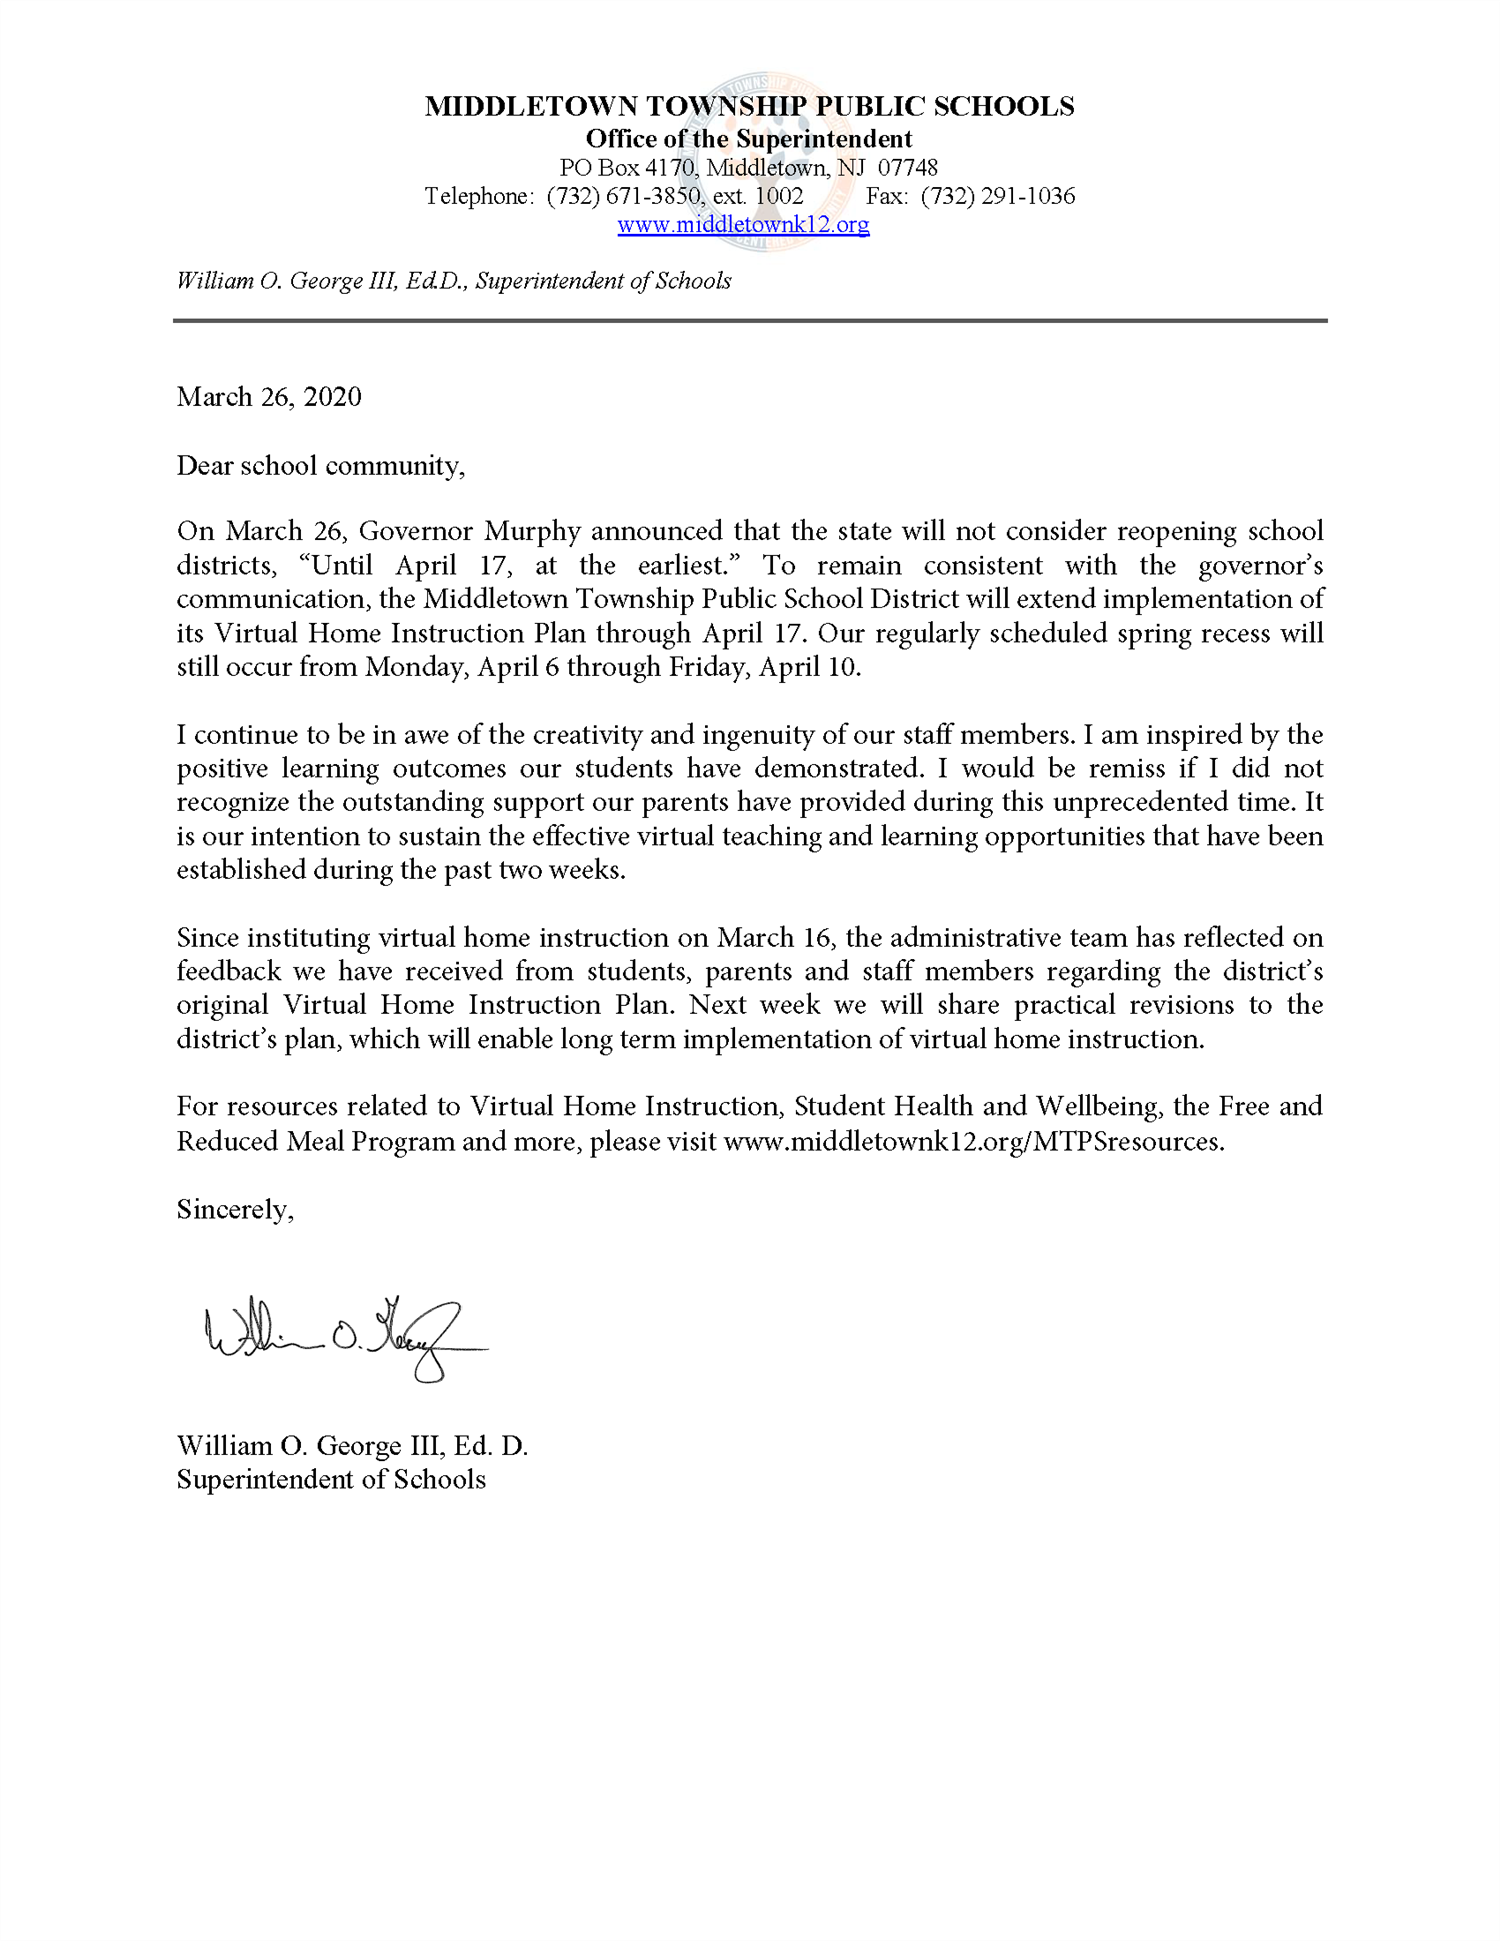 Community letter announcing extension of Virtual Home Instruction through April 17.